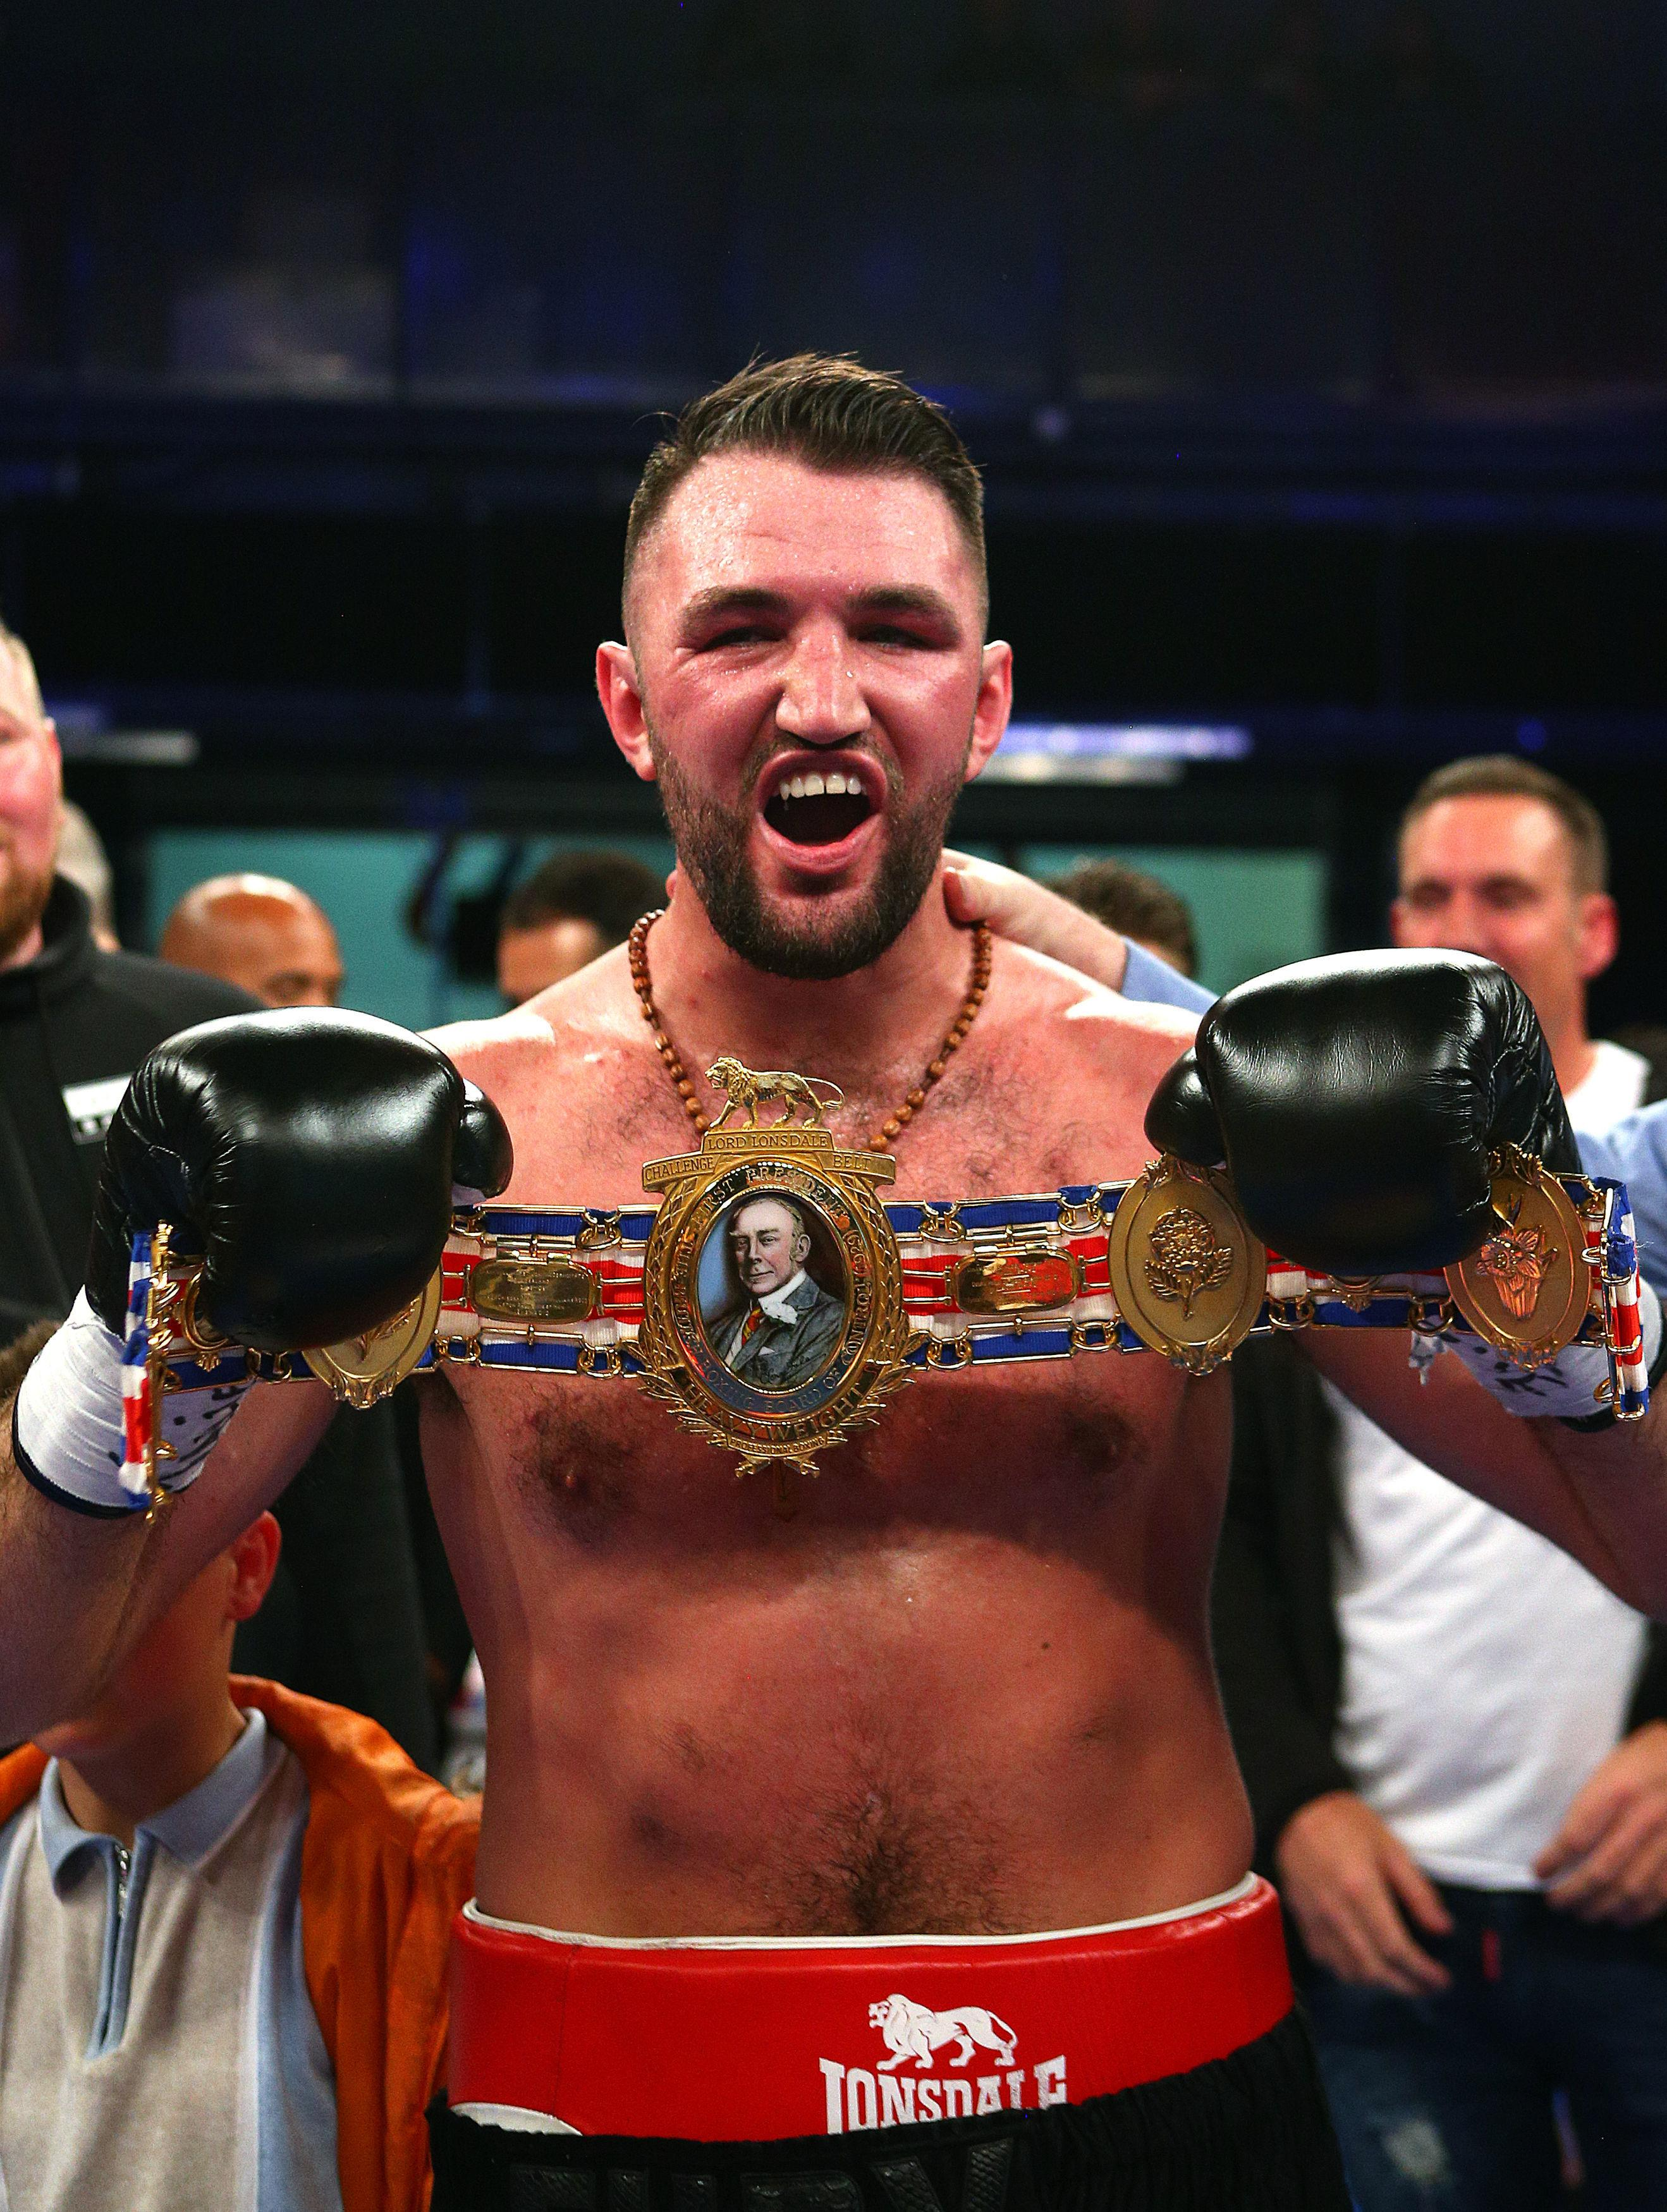 Hughie Fury is the current British heavyweight champ - but he sees himself as a world level fighter